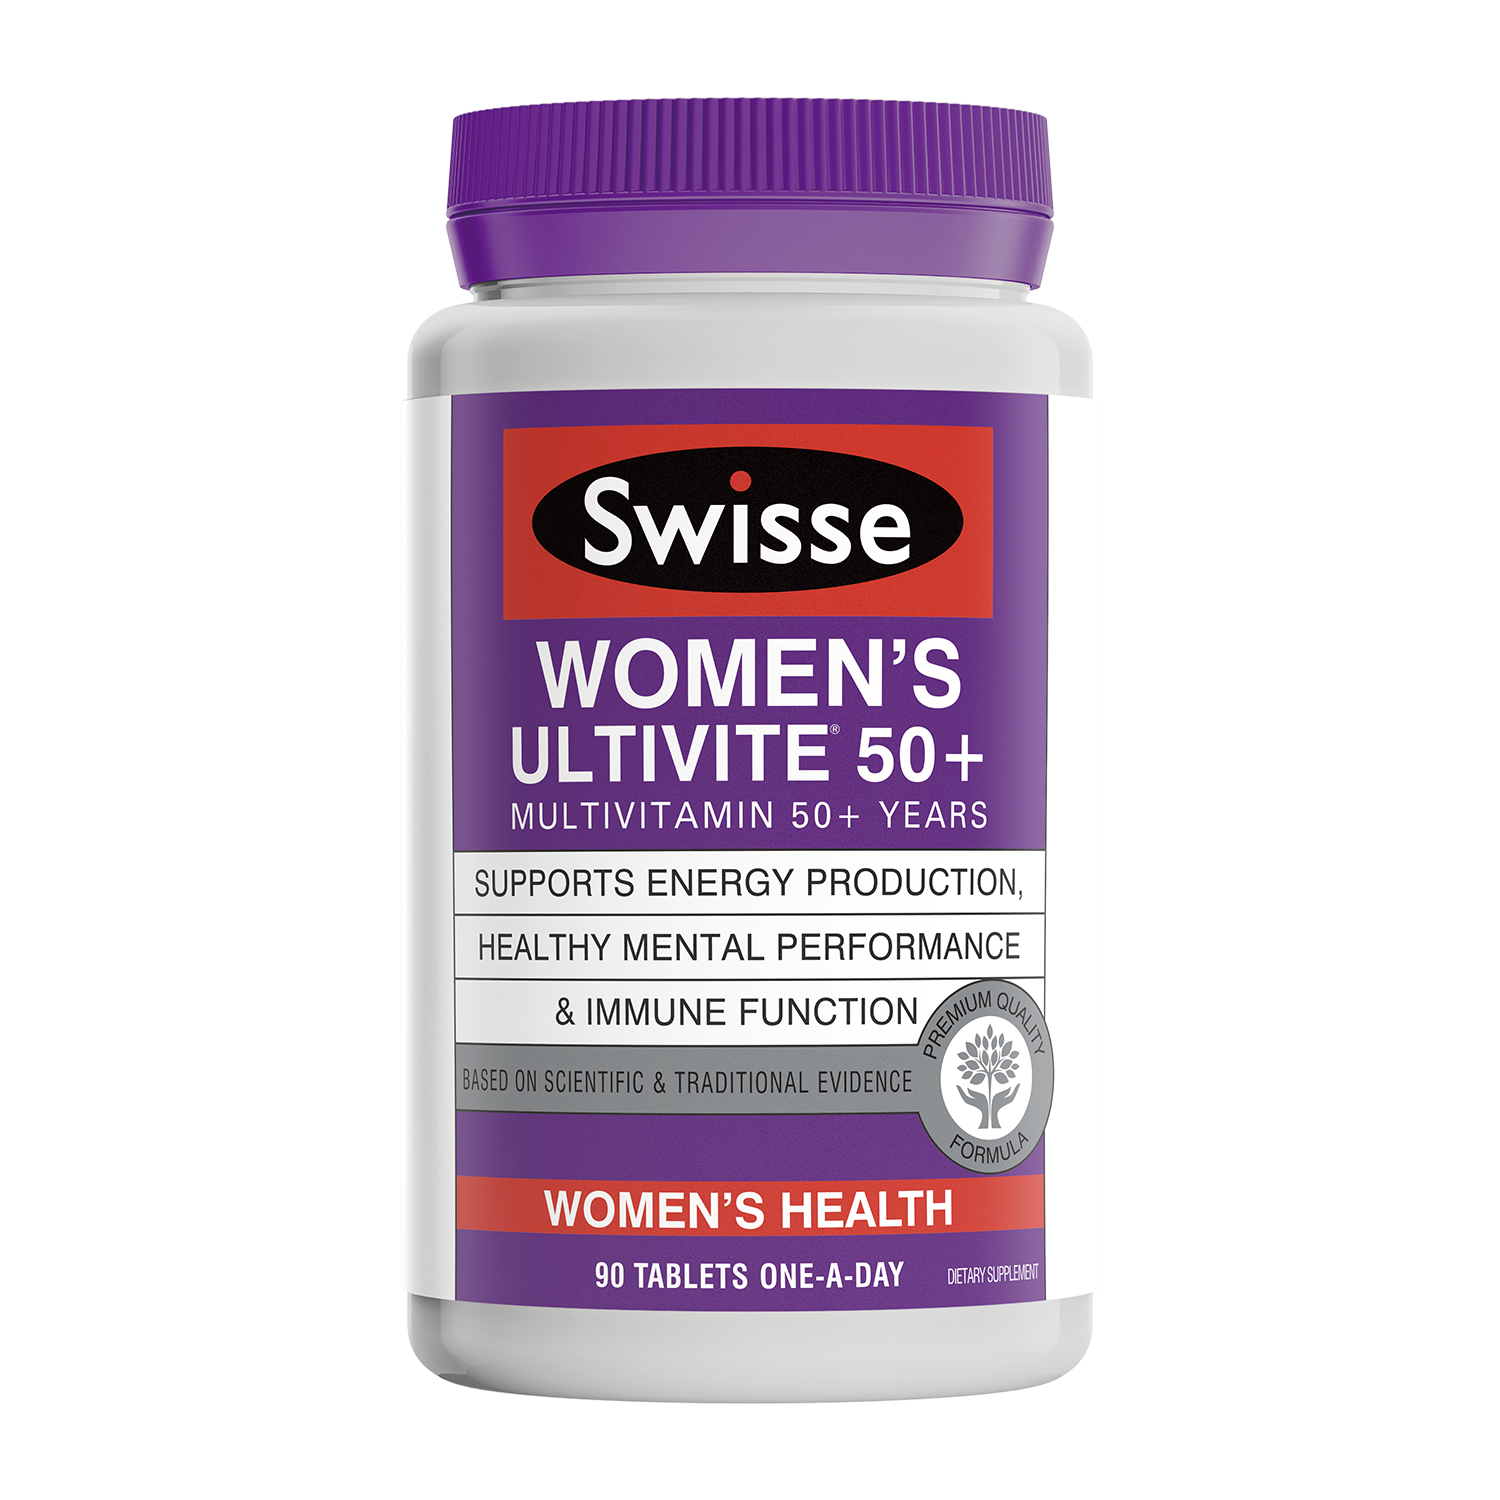 Swisse Womens Ultivite 50 product 90 tabs